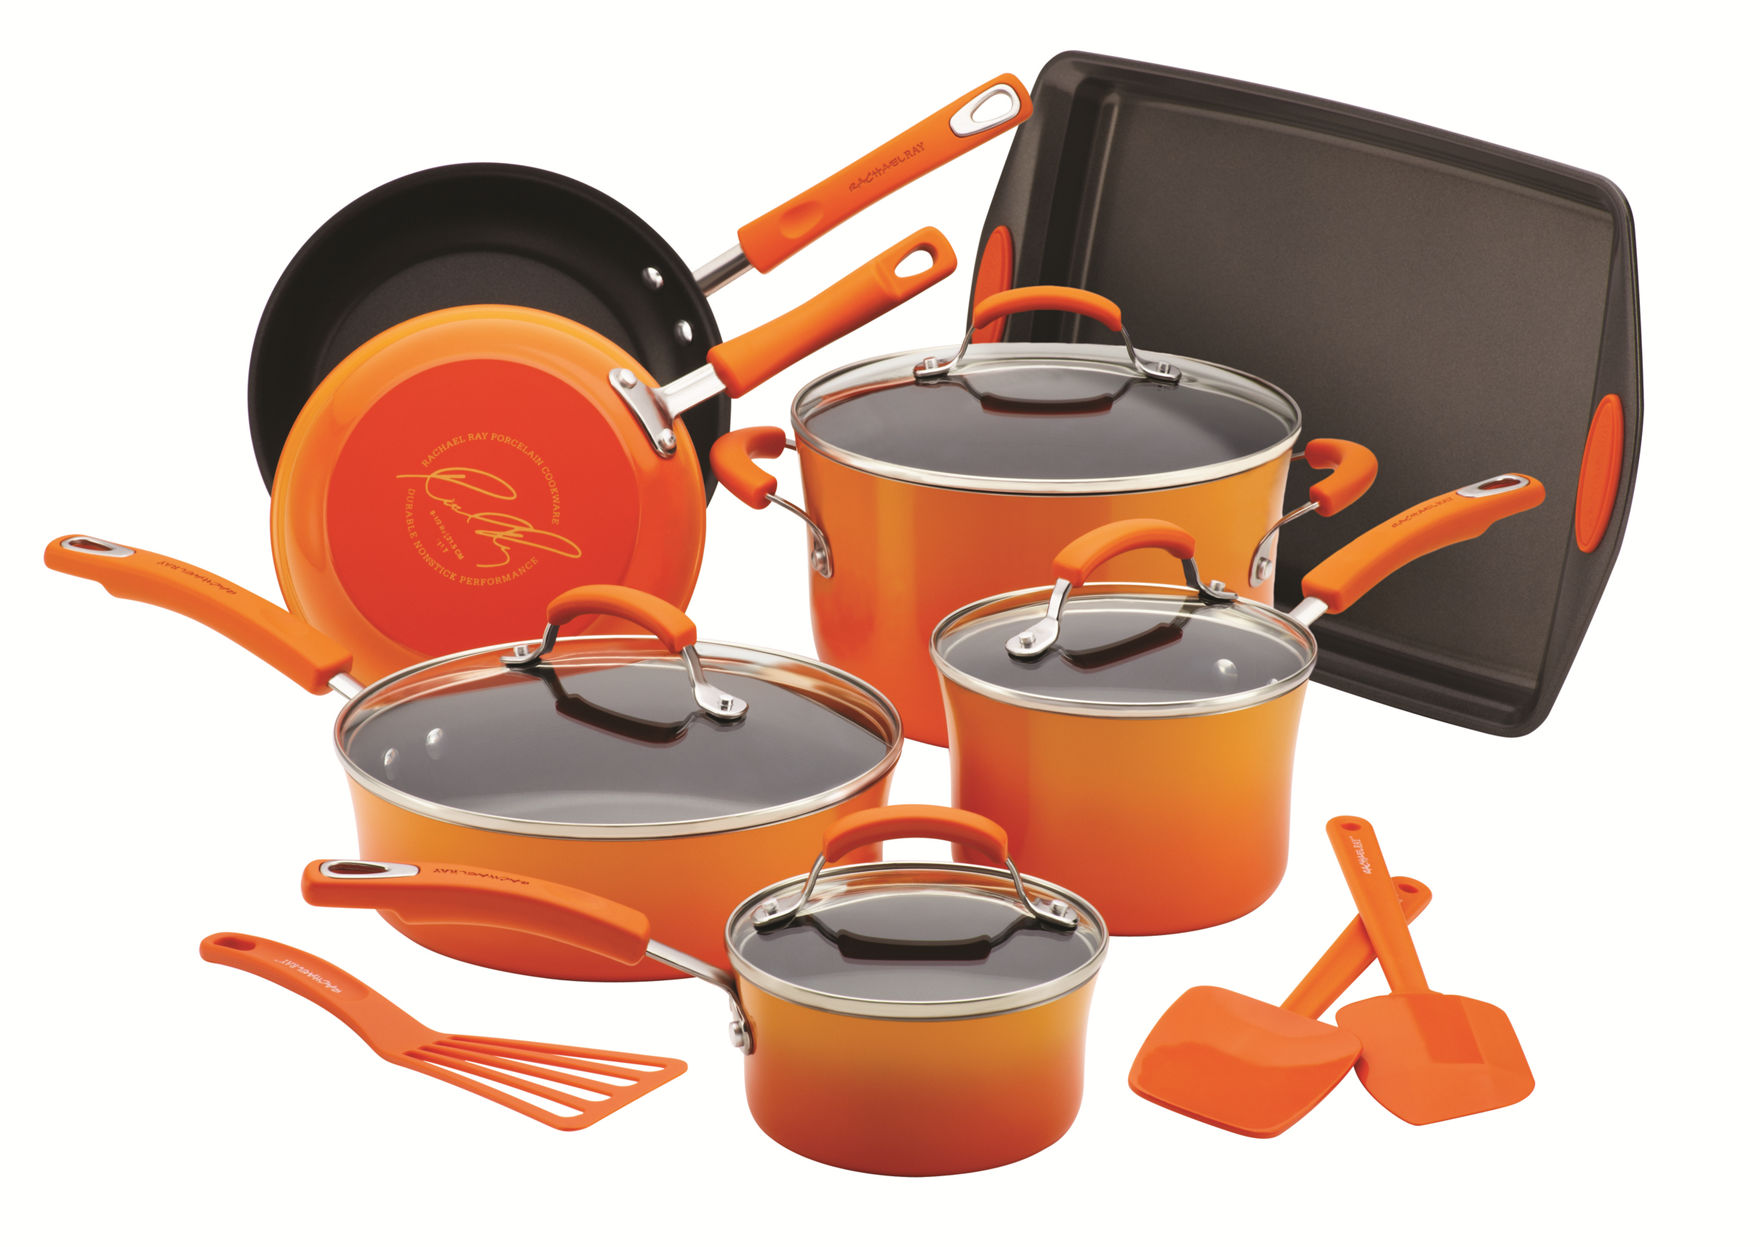 Rachael Ray Orange Cookware Sets Cookware